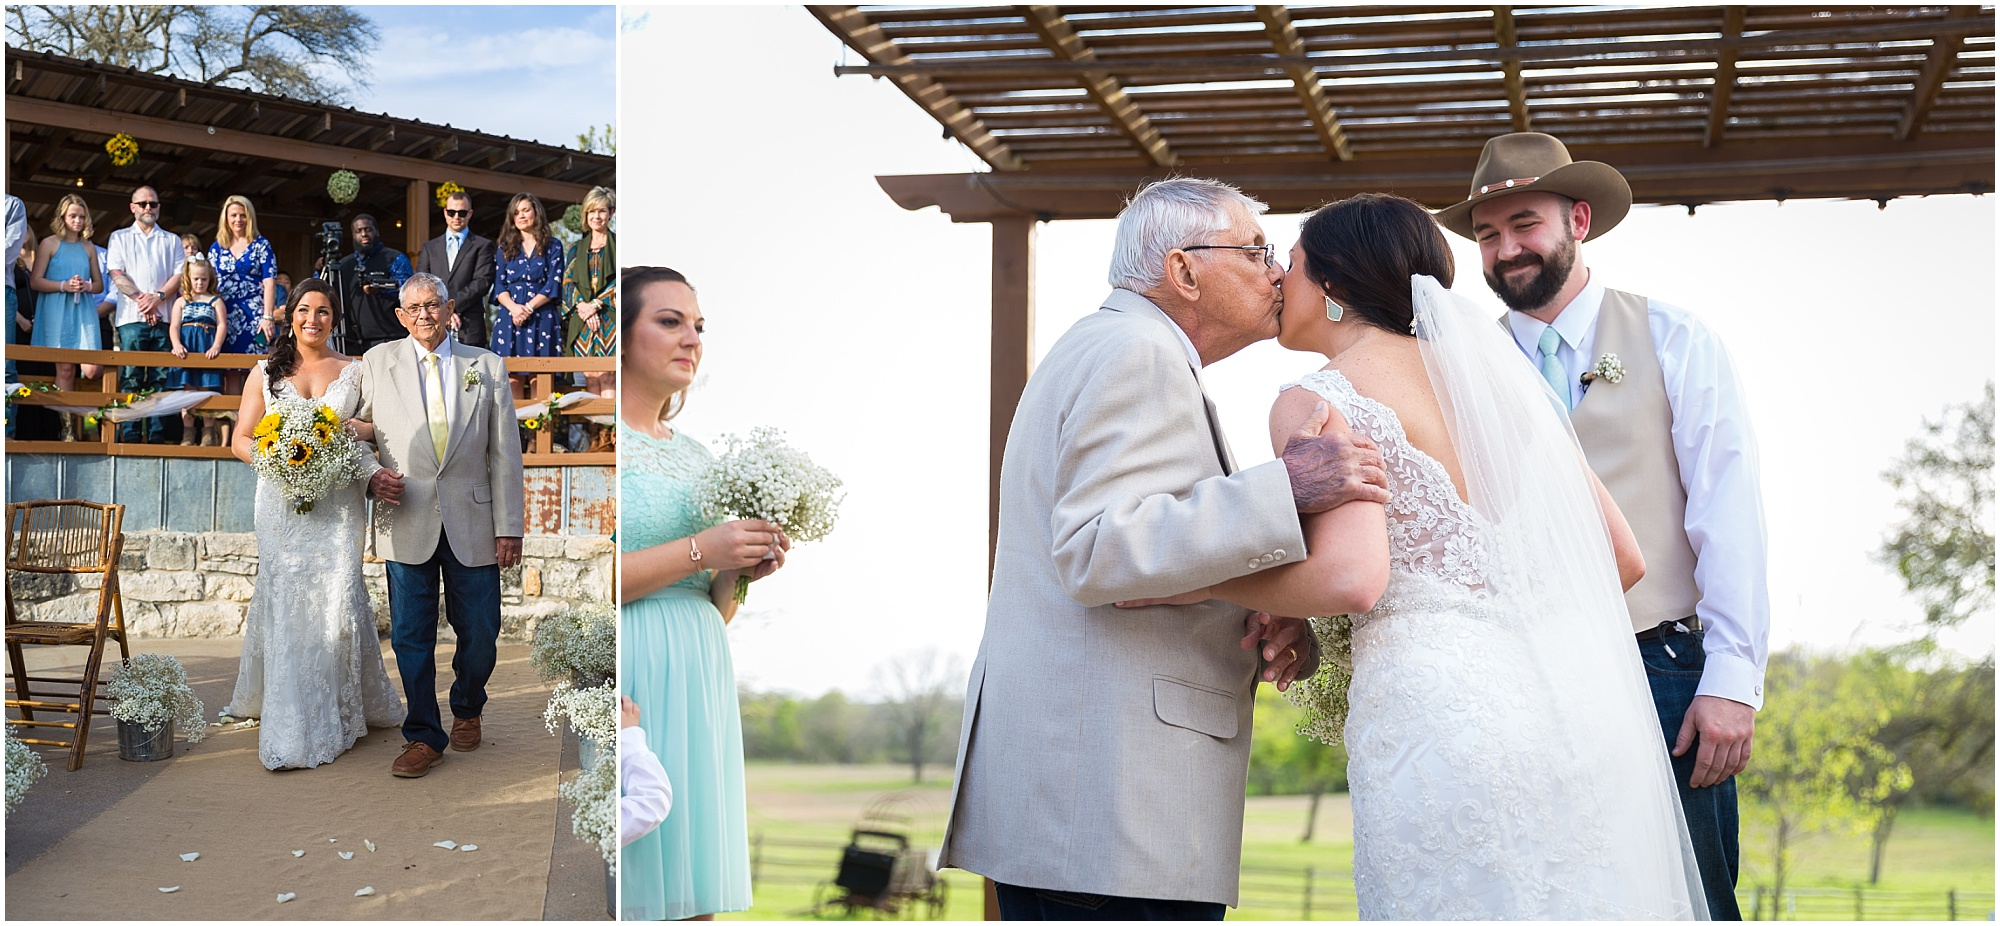 Dad walks his daughter down the aisle at Peacock River Ranch in Gatesville, Texas - Jason & Melaina Photography